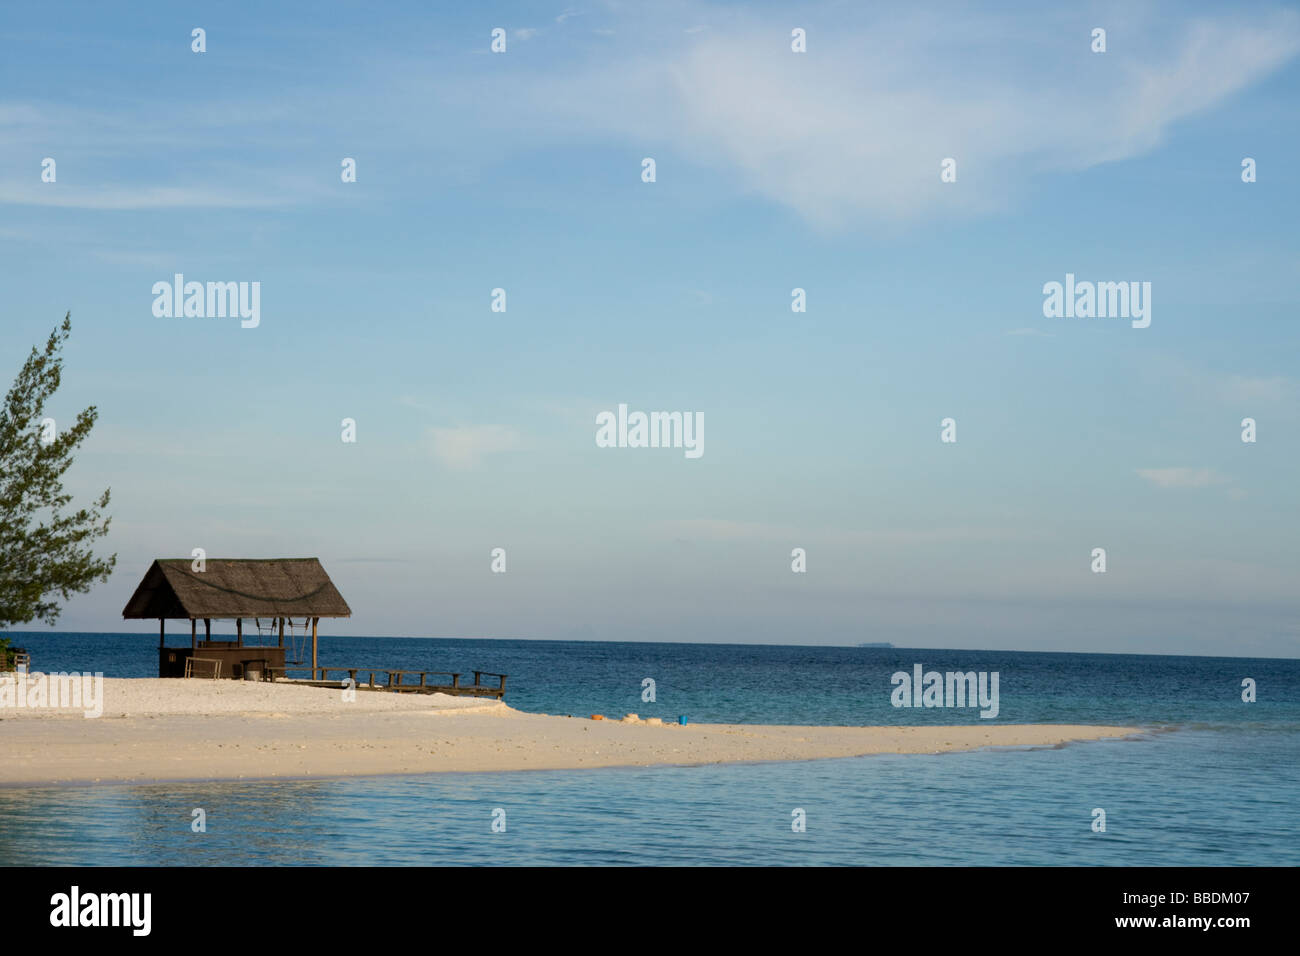 Deserted beach and hut, tropical island resort of Lankayan, Malaysian Borneo - Stock Image